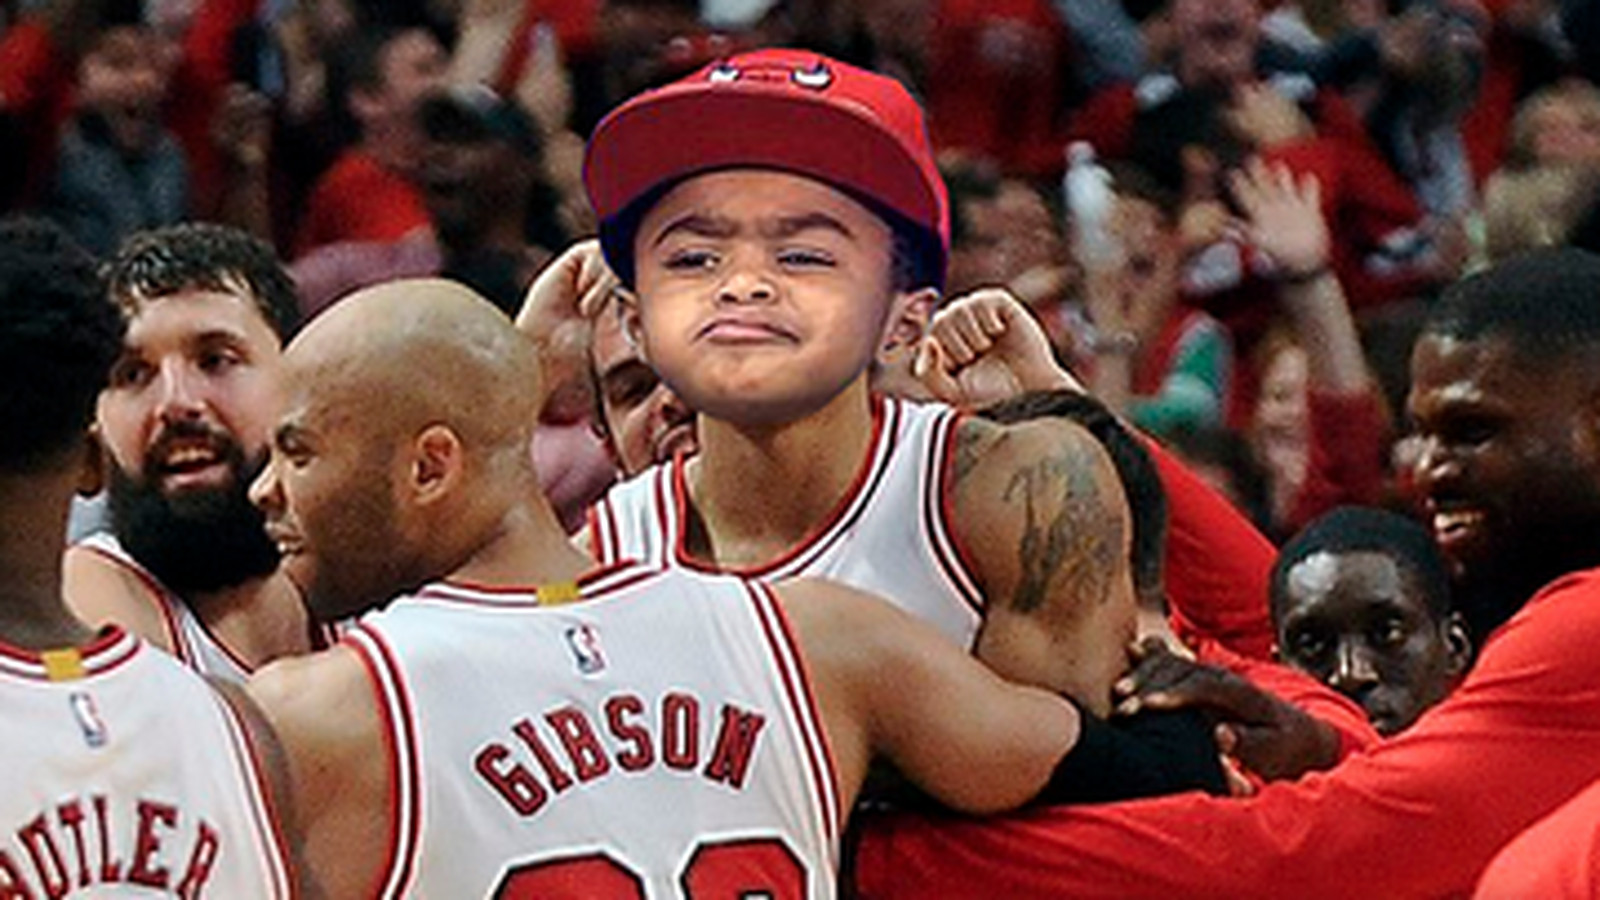 Derrick Rose S Son Made A Mean Face During His Dad S Press